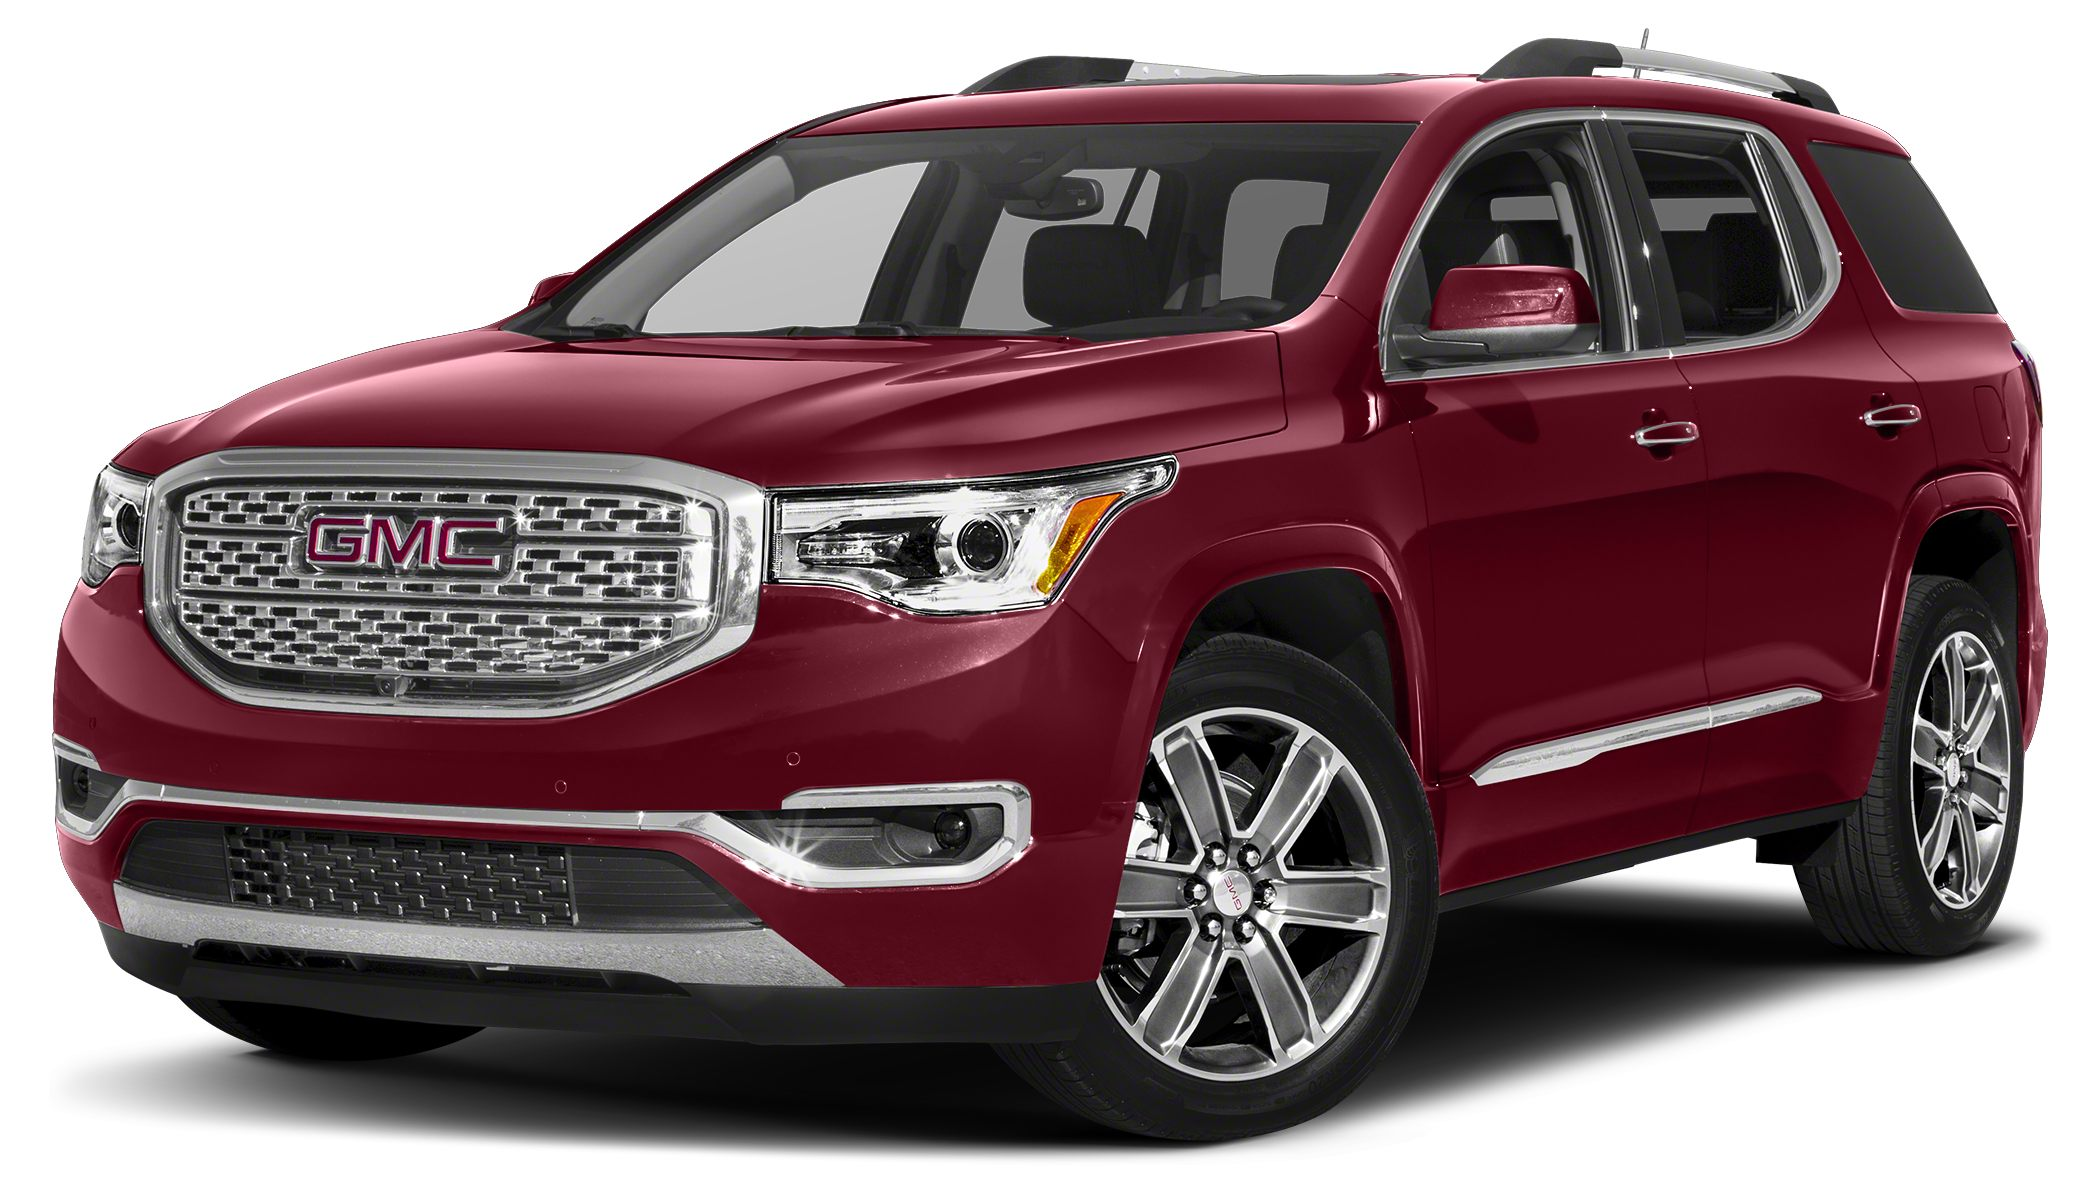 2017 GMC Acadia Denali The all-new 2017 GMC Acadia mid-size SUV is designed to make a lasting impr